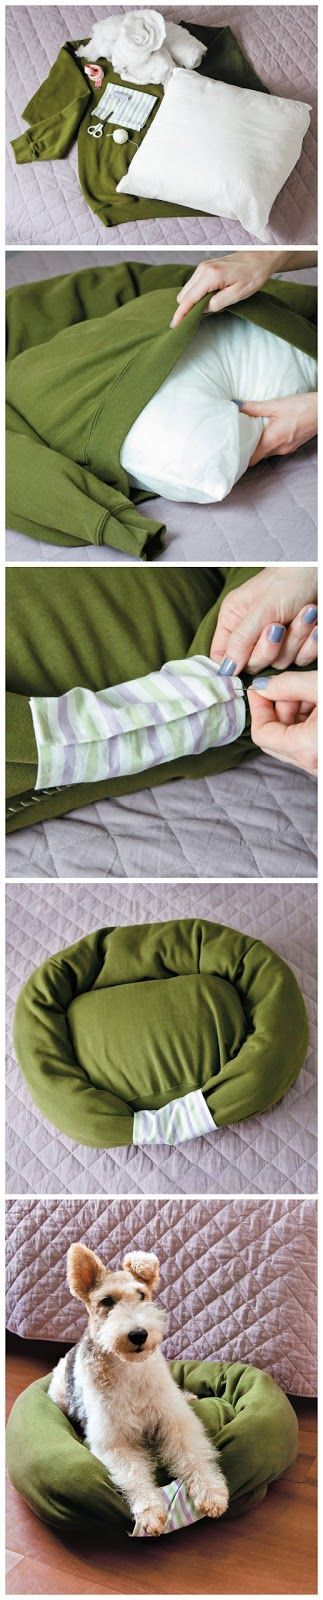 DIY Sweatshirt Pet Bed- Use your worn out sweatshirt to make a bed for your favorite four legged friend and then get some new gear over at Skreened! http://skreened.com/?